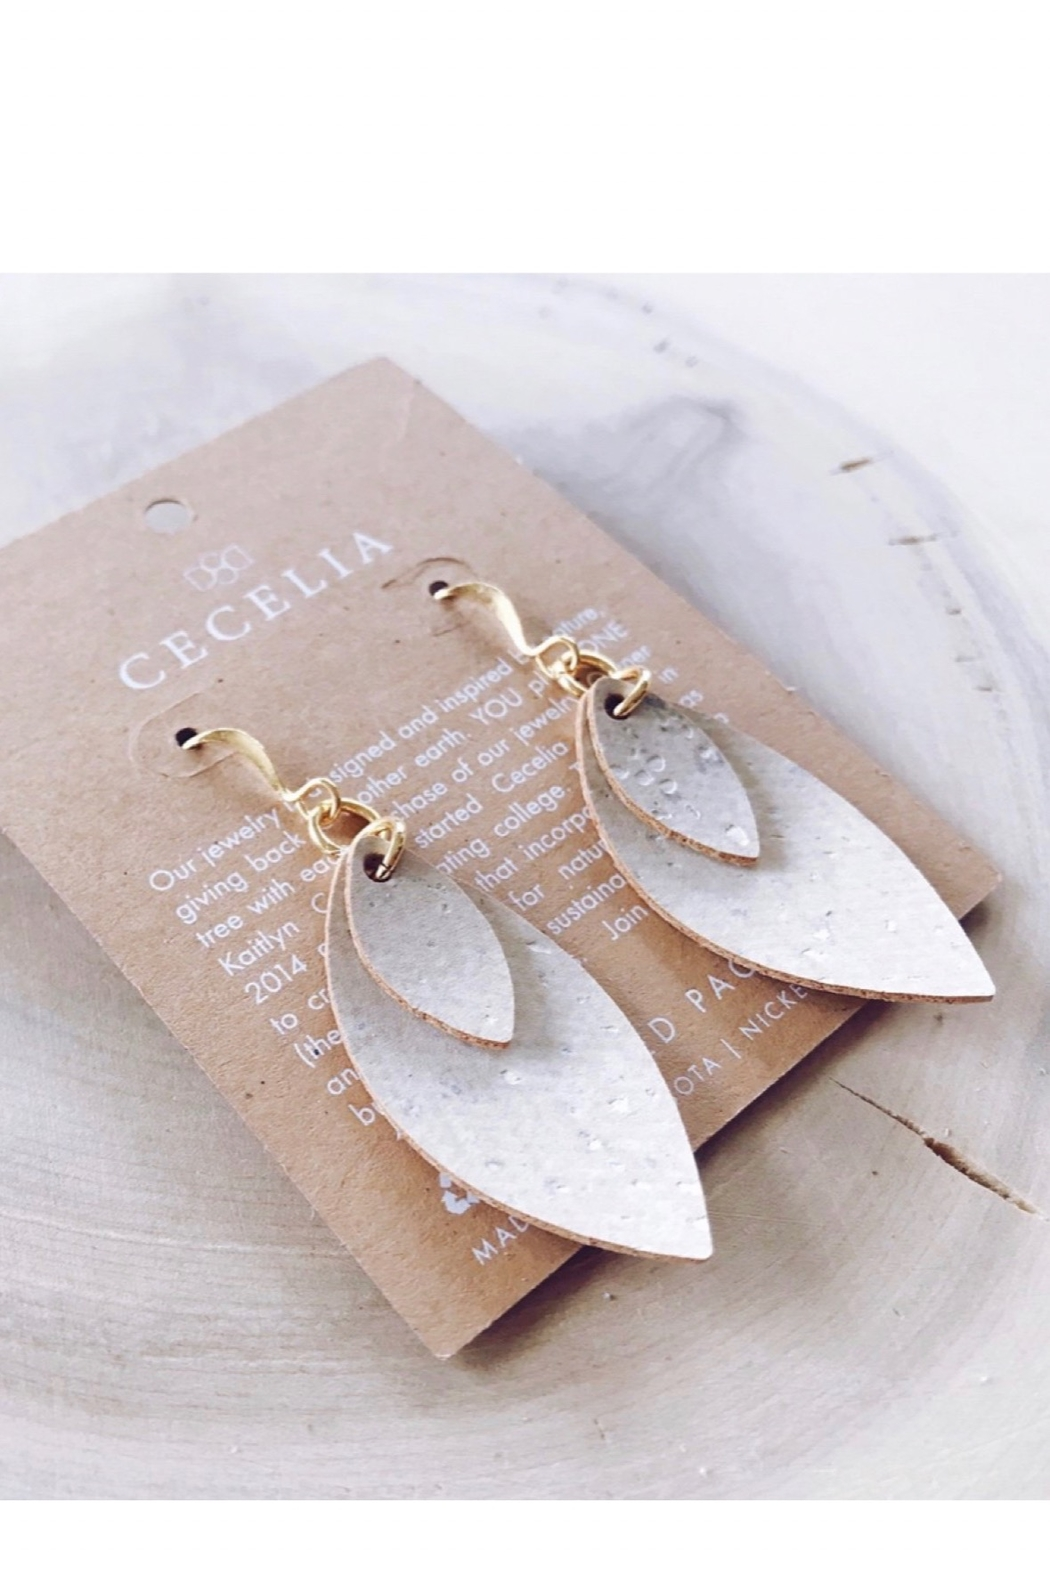 Cecelia Designs Jewelry White Cork Double Feather Earrings - Main Image